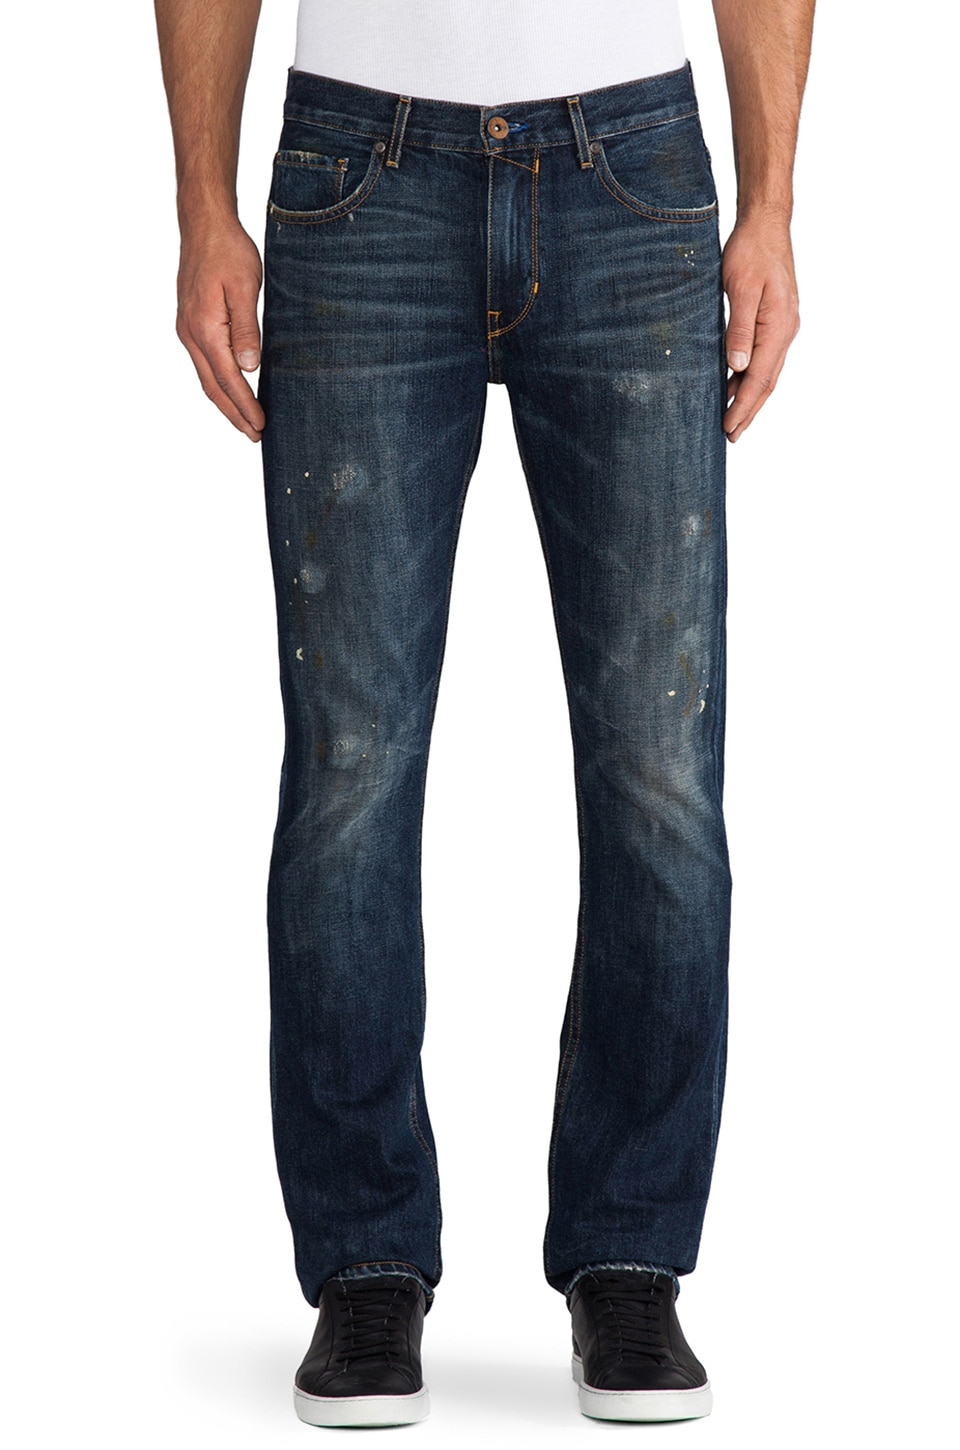 Paige Denim Federal Slim in Pioneer